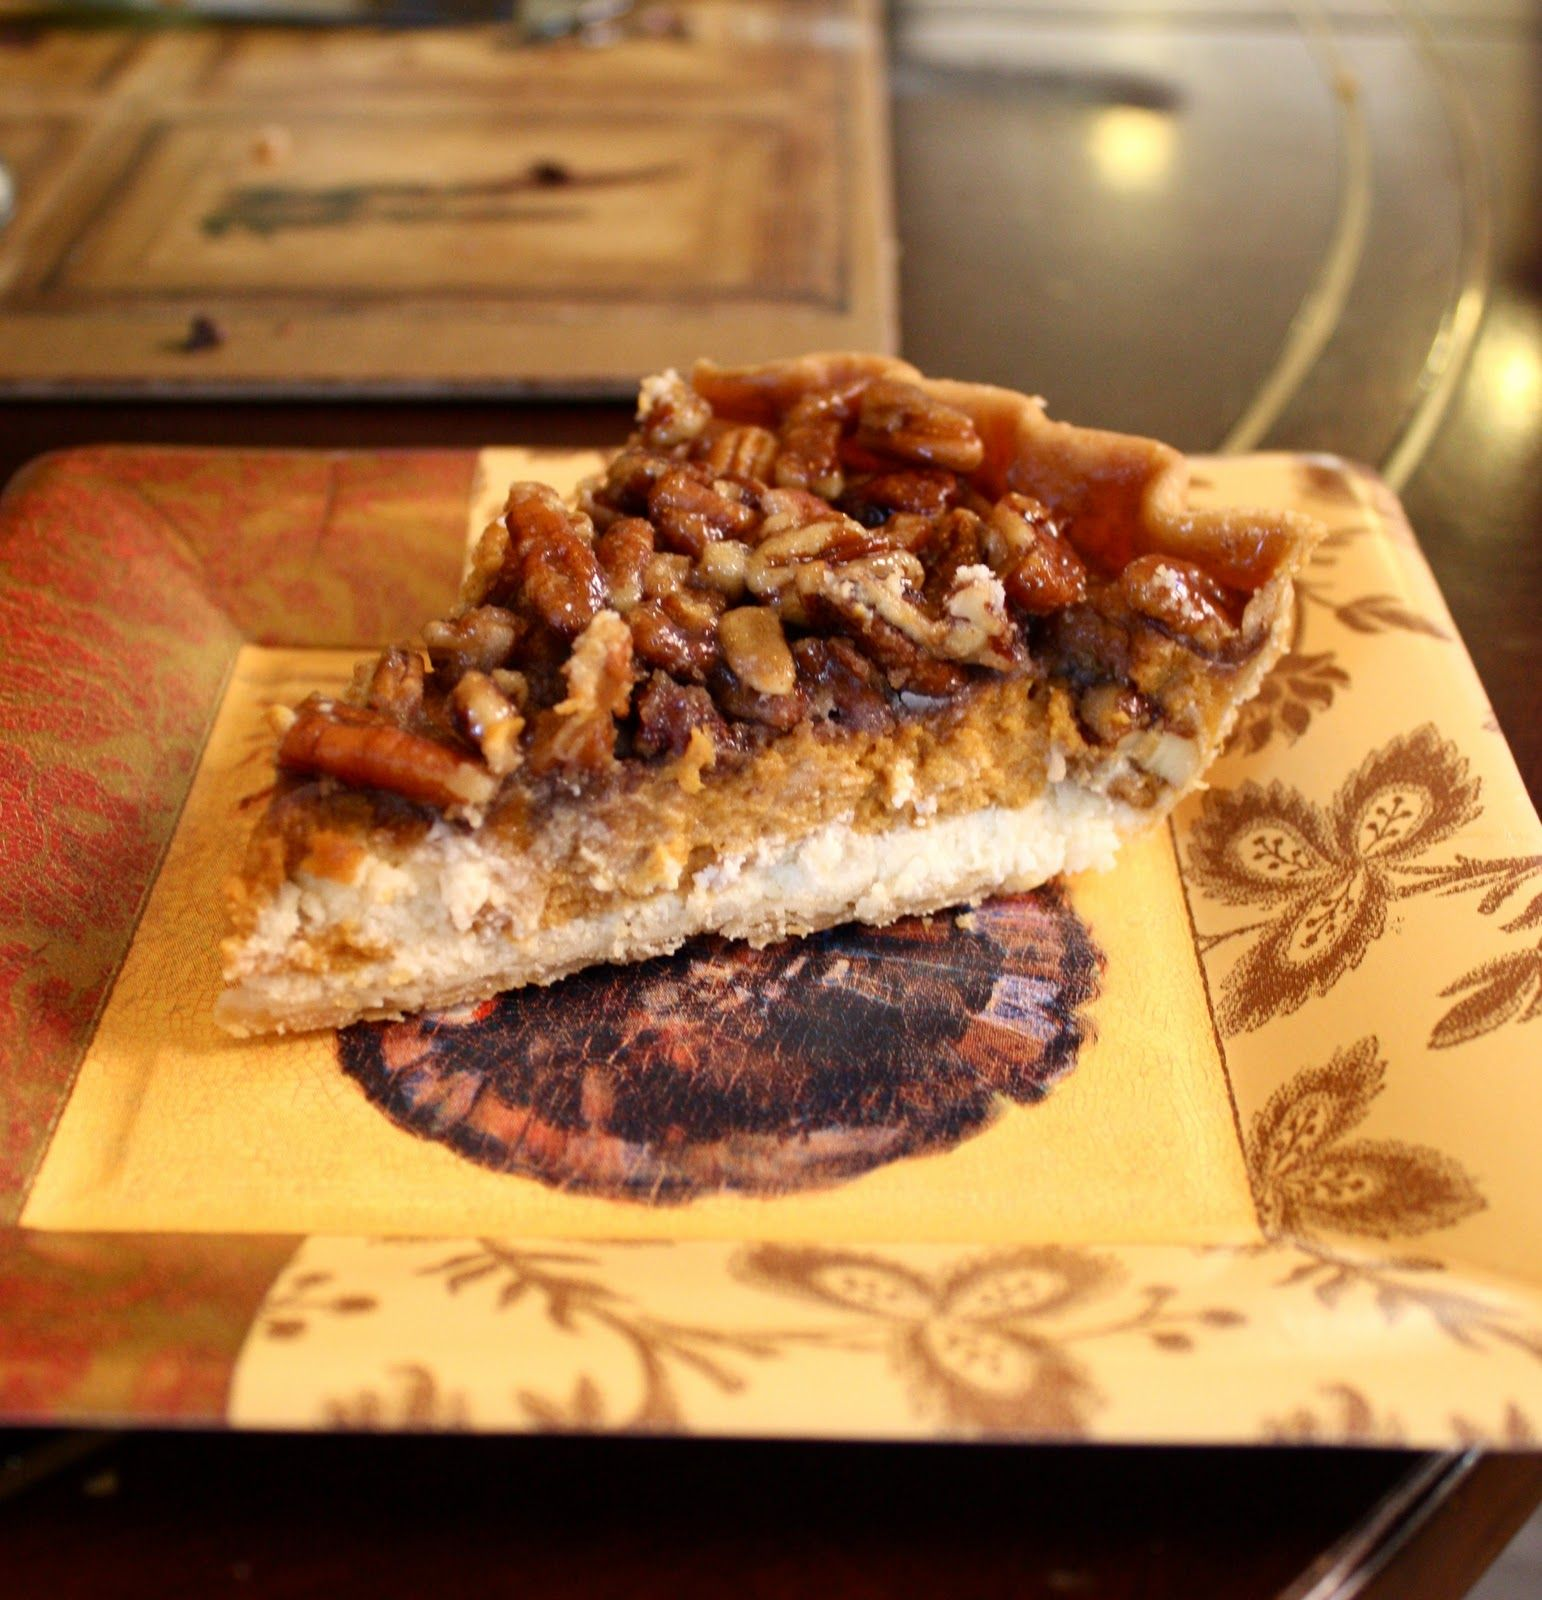 Chocolate Therapy: Cheesecake Pumpkin Pecan Pie - cannot wait for Thanksgiving to try this!